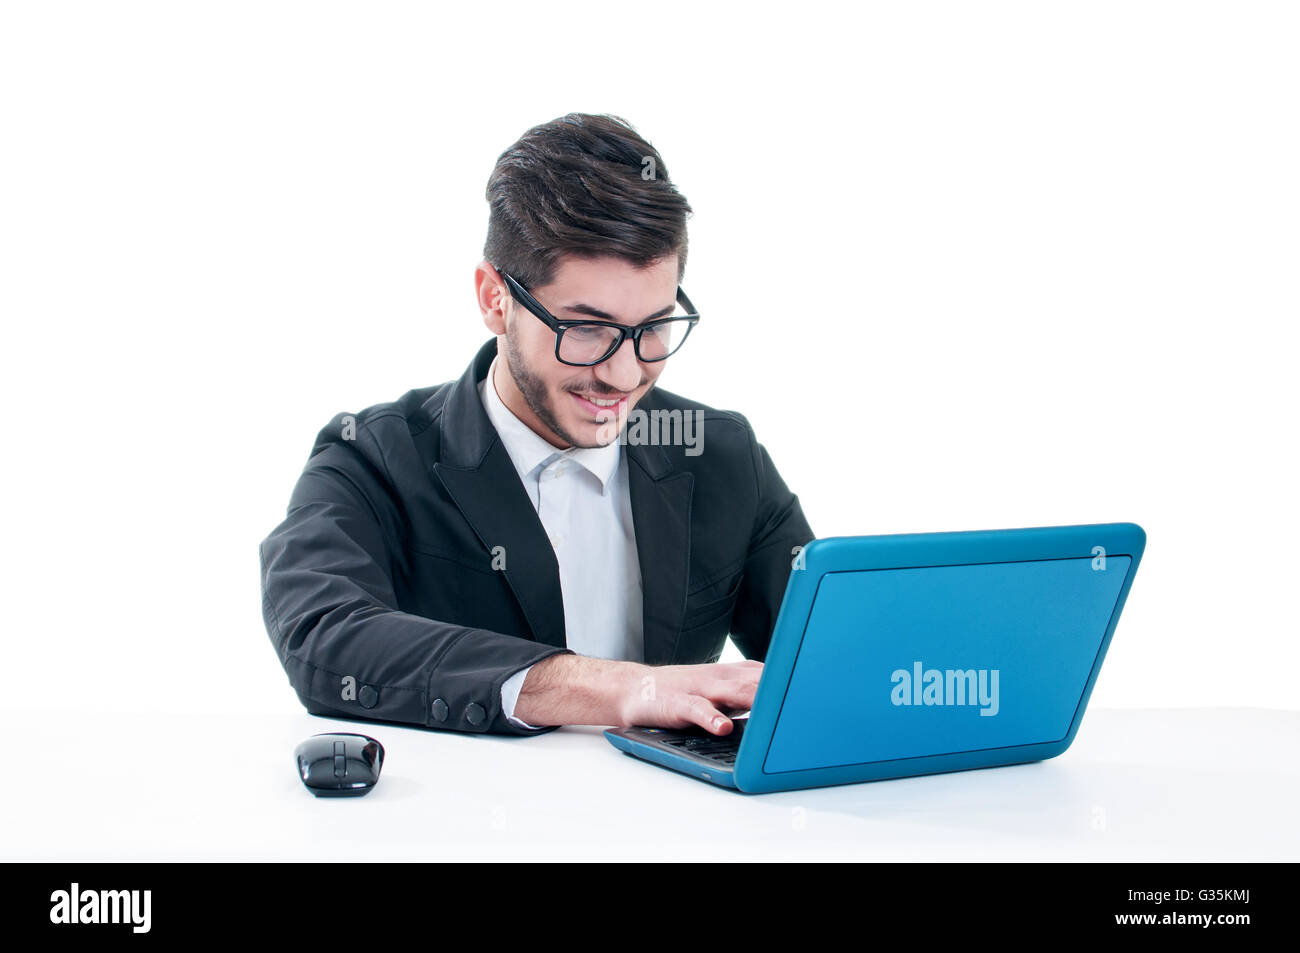 Smiling young man chatting on his laptop. Isolated on white background Stock Photo